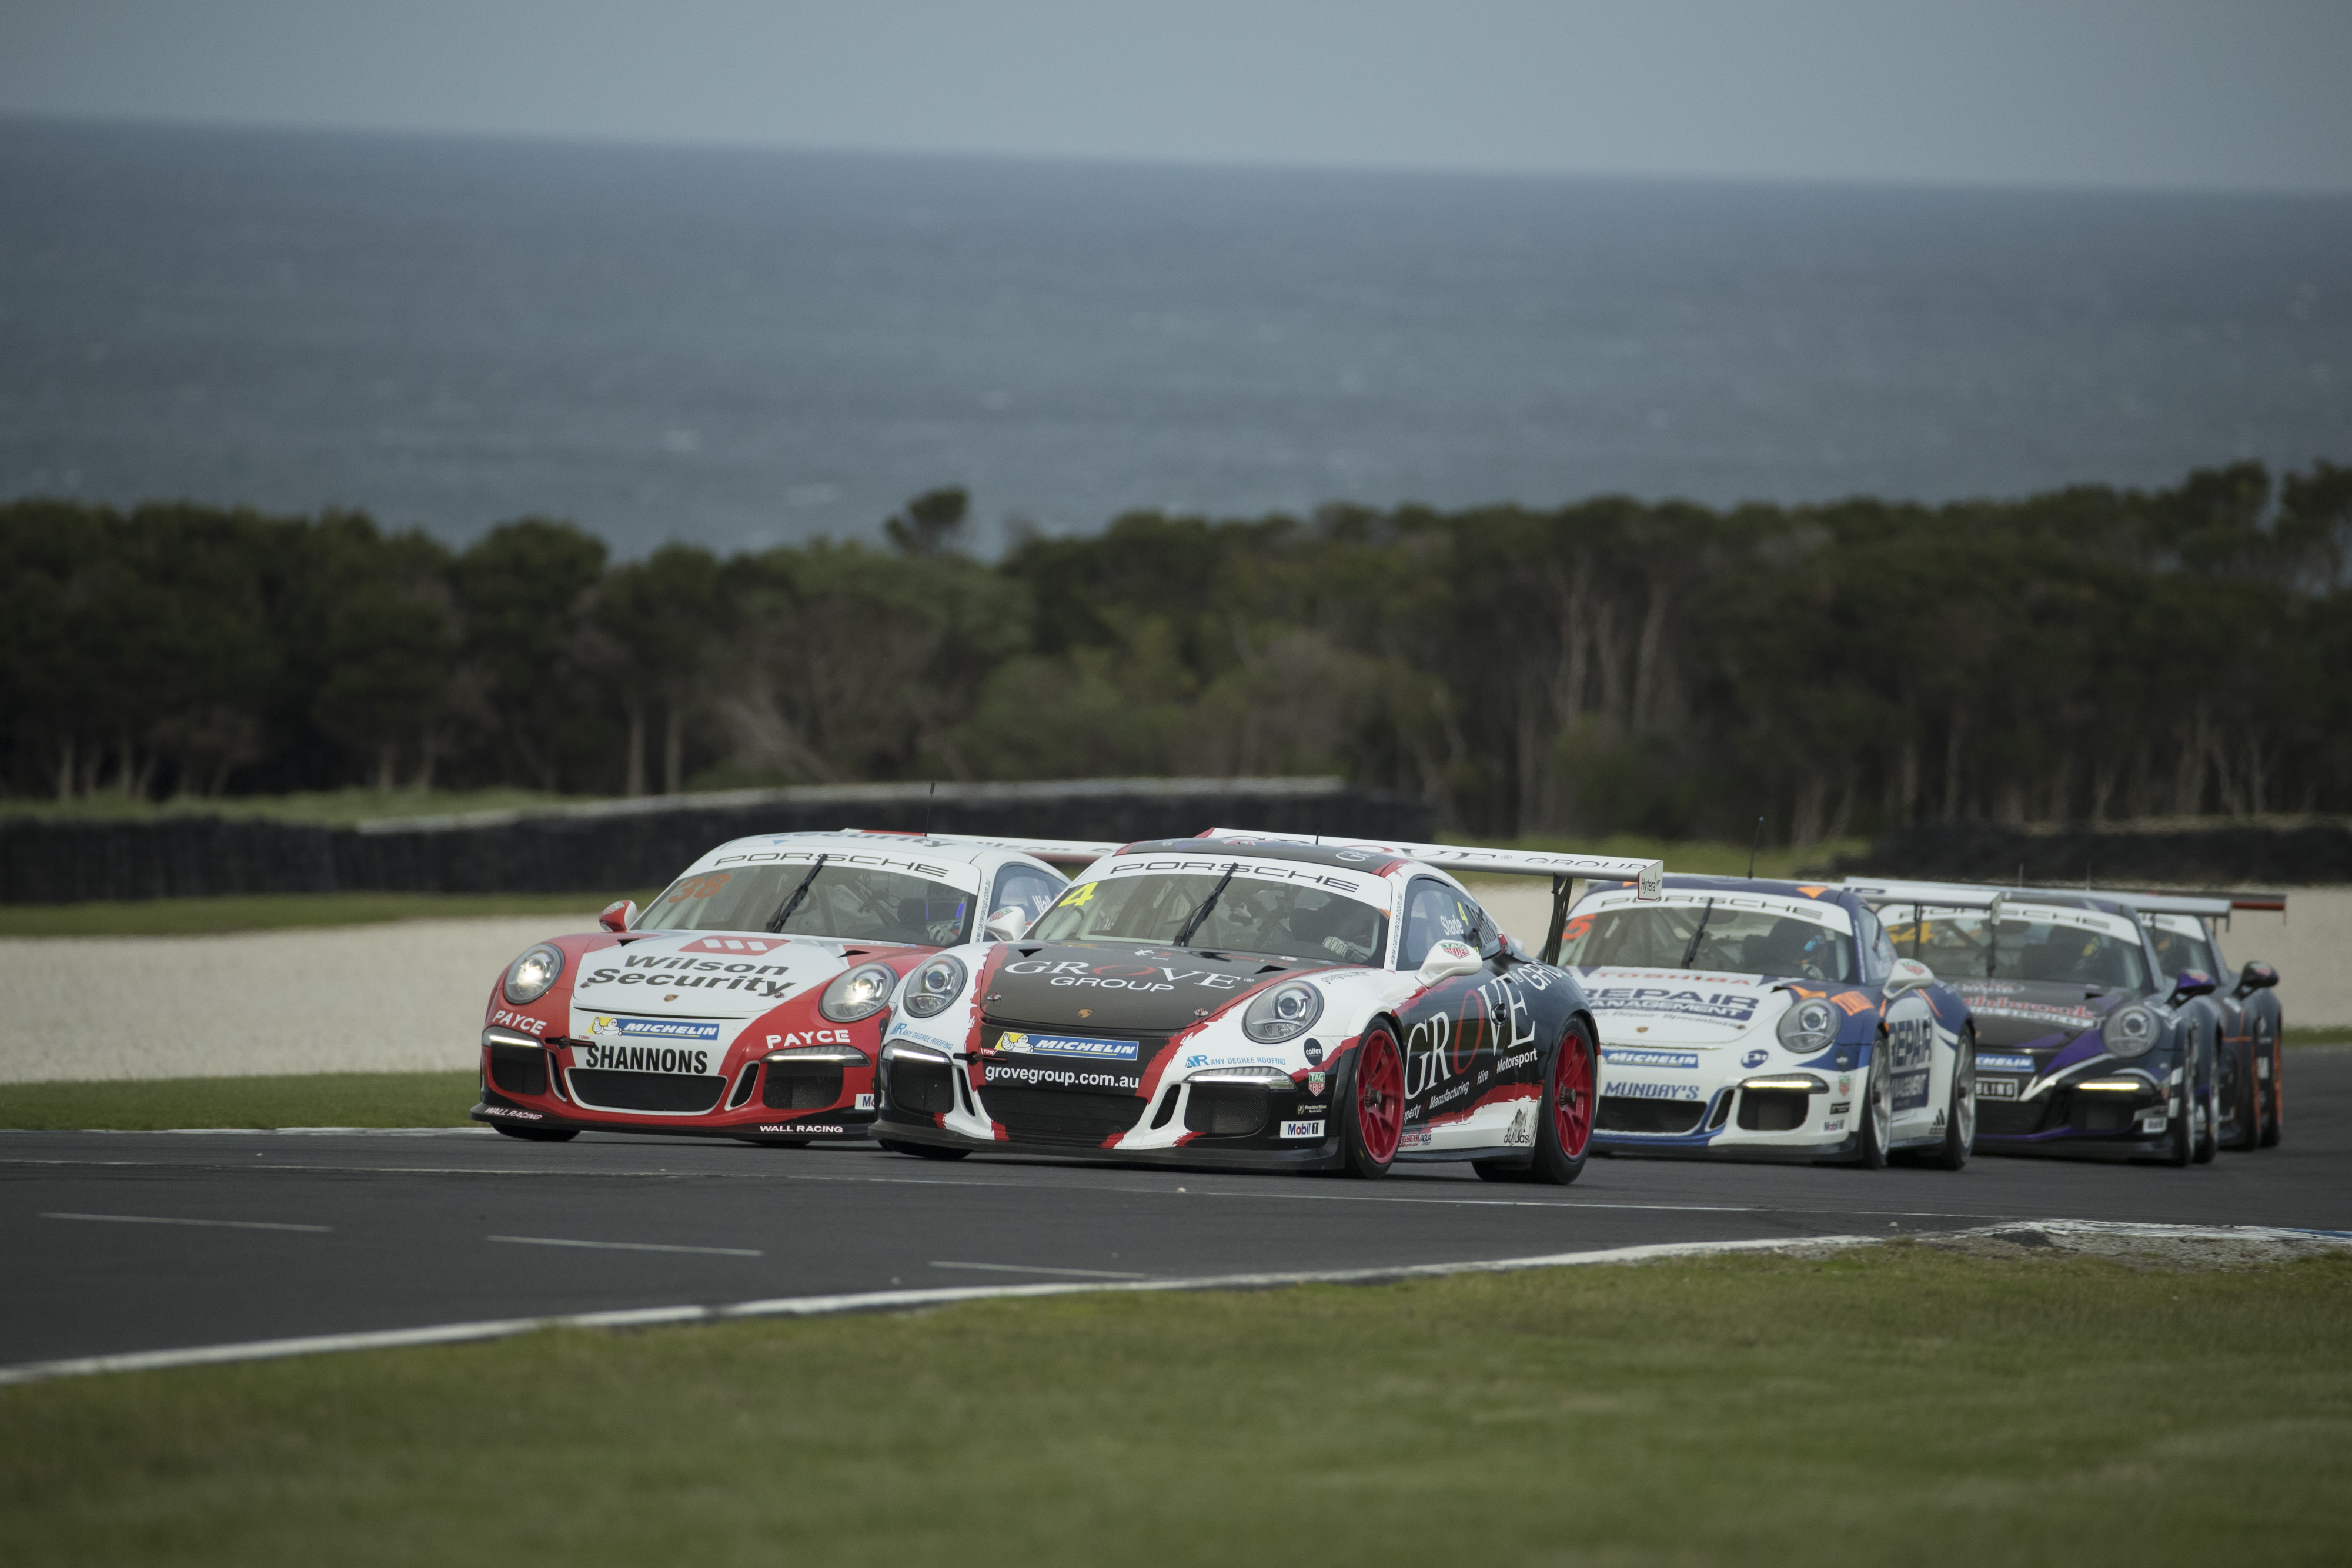 p38-Wall-CarreraCup-R3-2017-02245